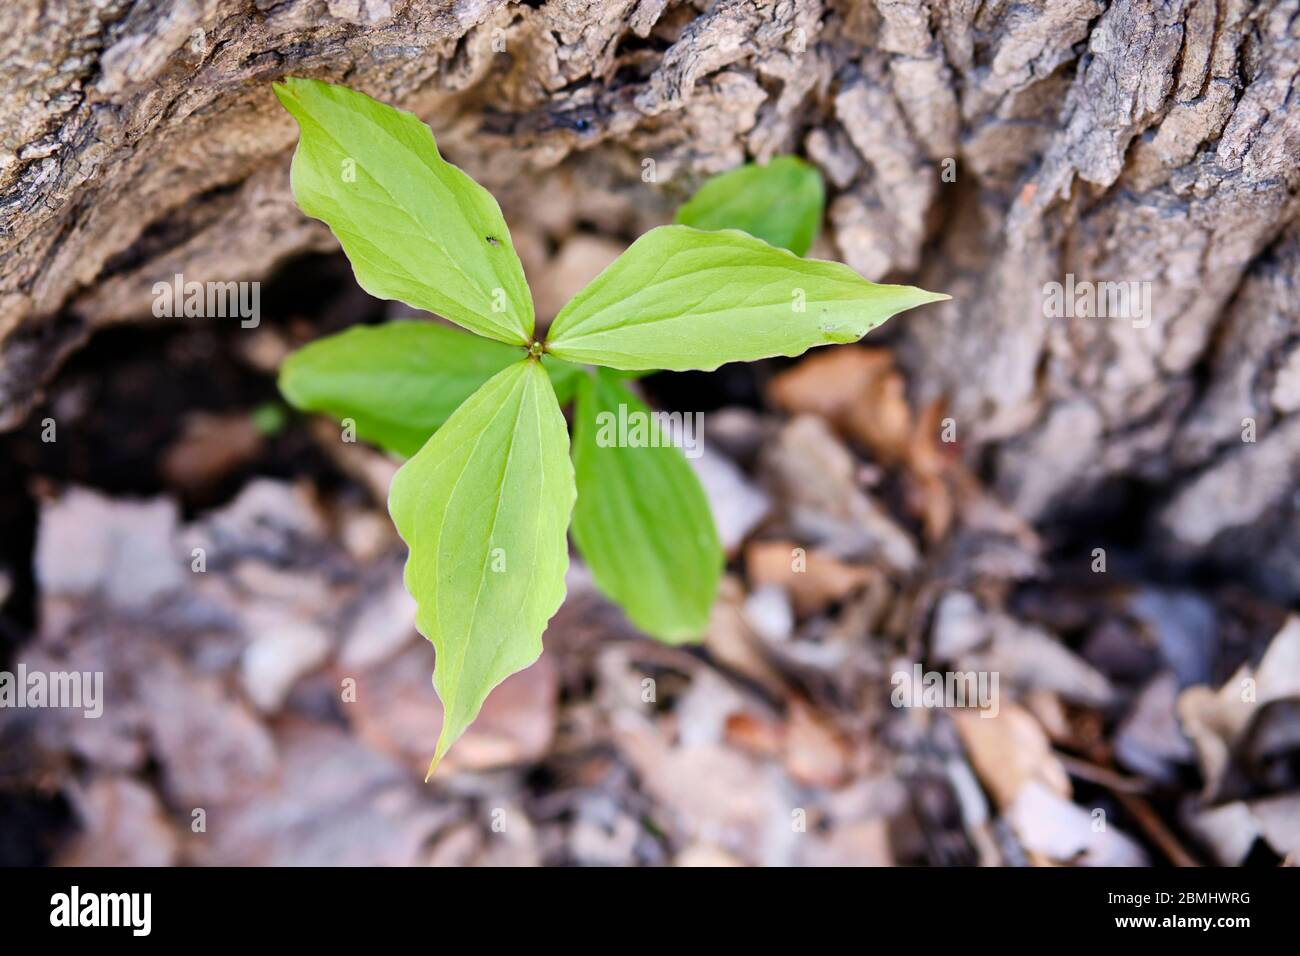 view-from-above-of-a-trillium-plant-leaves-after-the-flower-has-fallen-off-with-bark-background-2BMHWRG.jpg